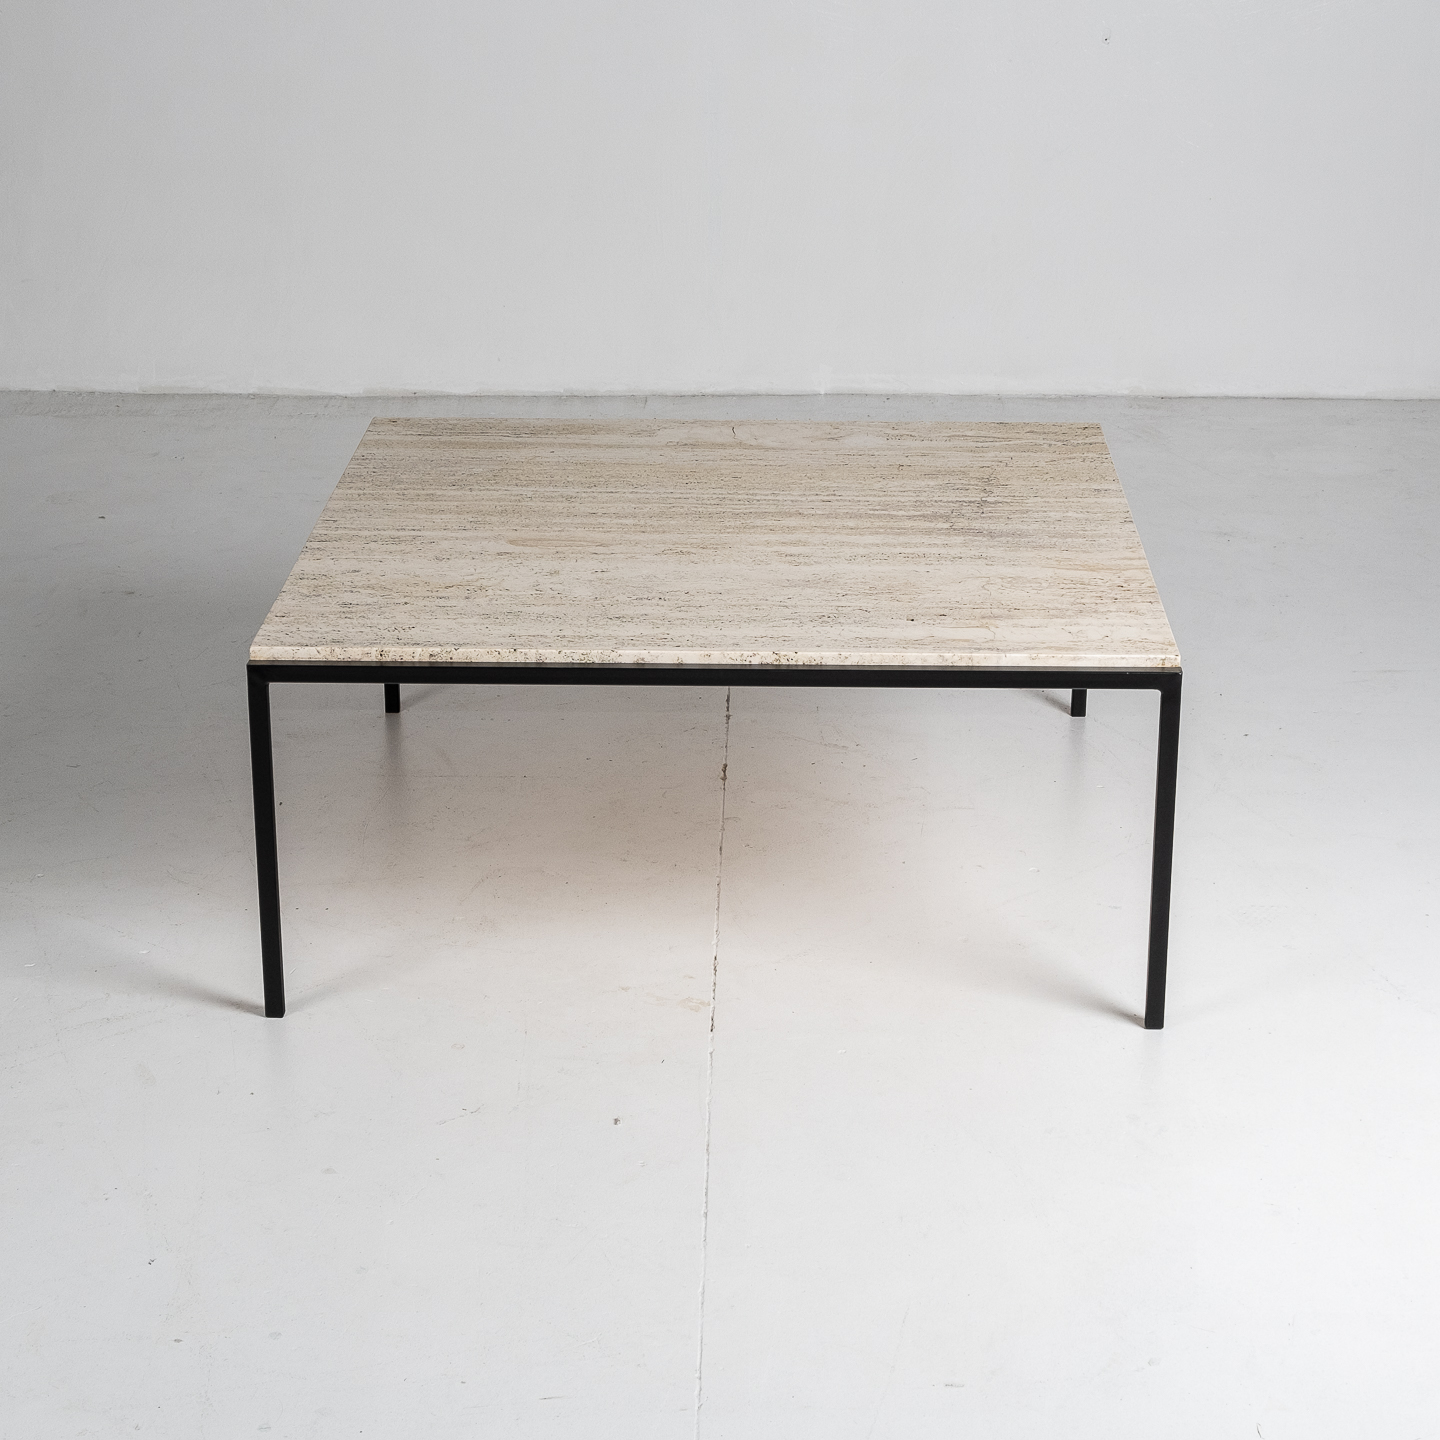 Square Travertine Coffee Table, 1950s, The Netherlands 42